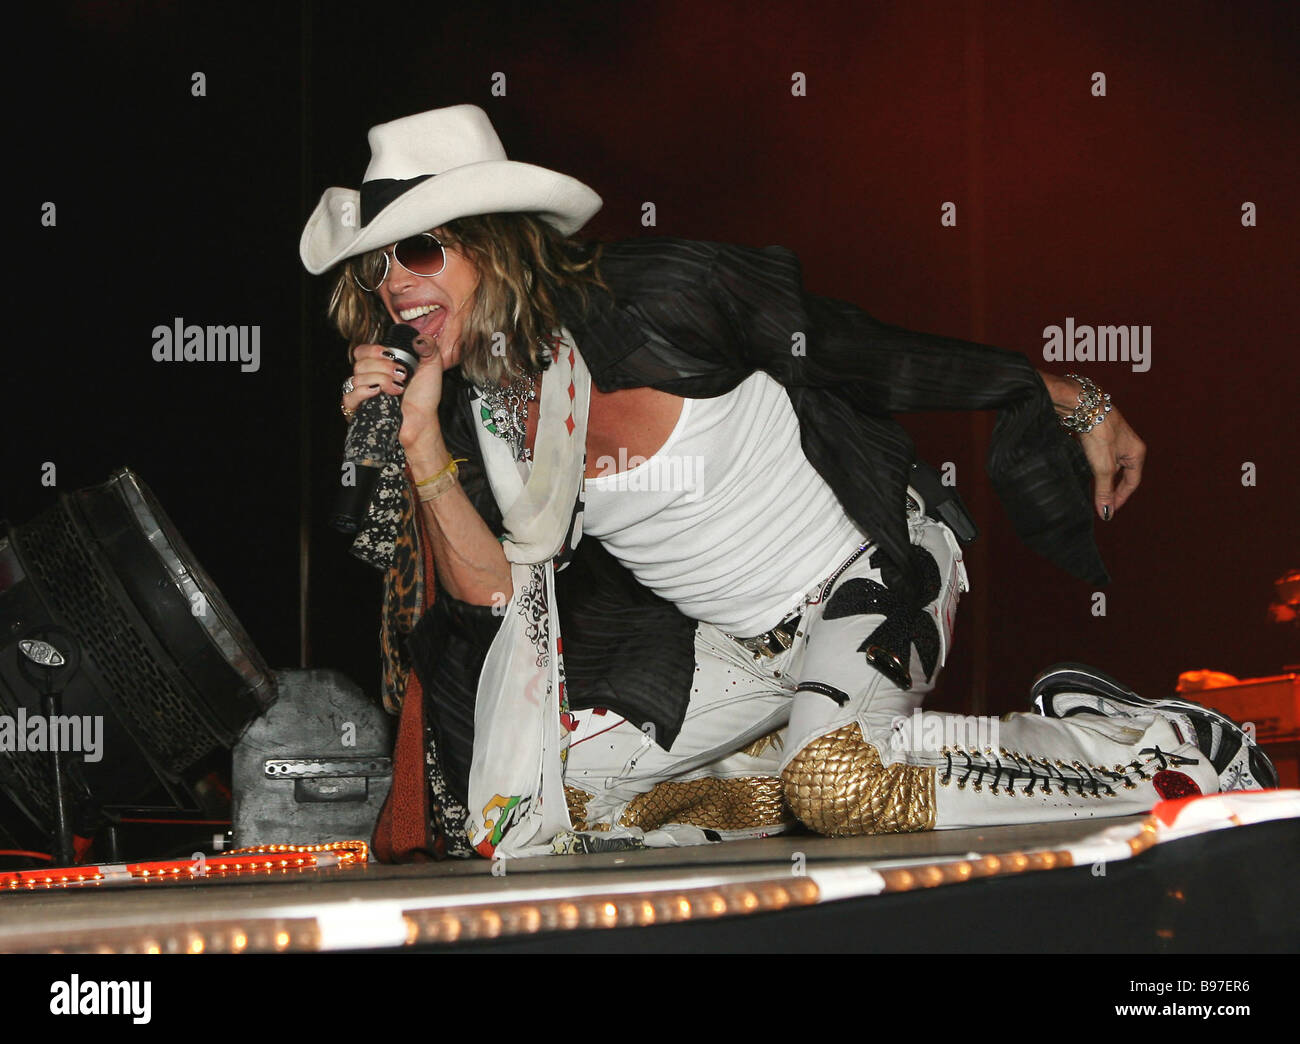 ac27772887e970 Steven Tyler leader and soloist of Aerosmith music group performs at  Olimpiisky sports center - Stock